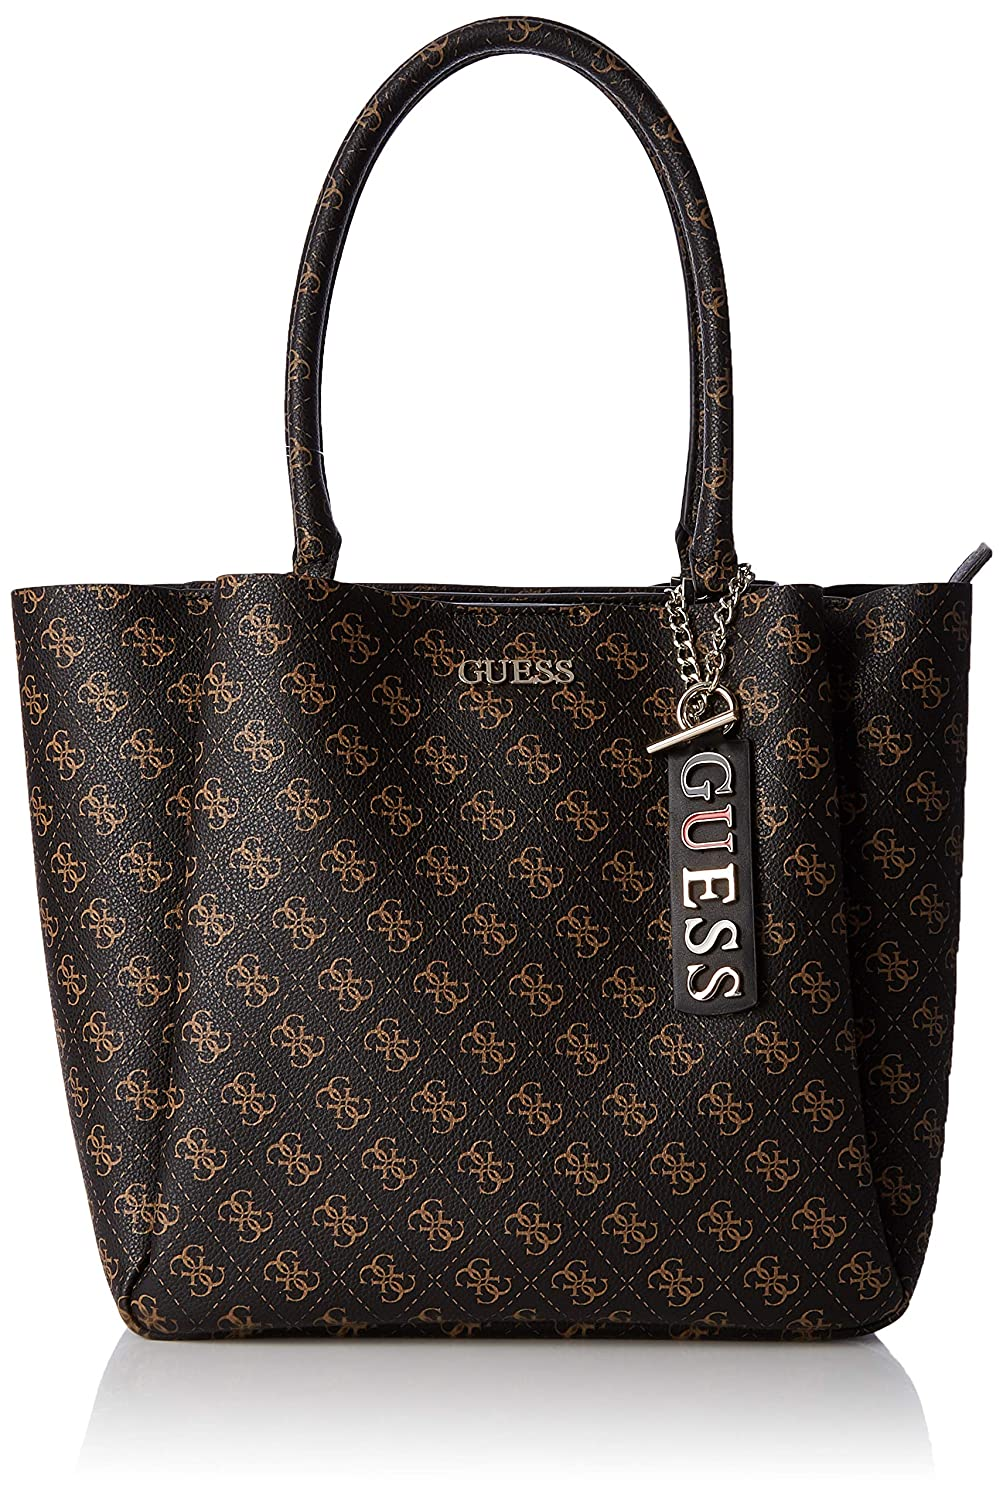 Guess - Maci Carryall, Mujer, Blanco (Brown), 40x30x15 cm (W ...